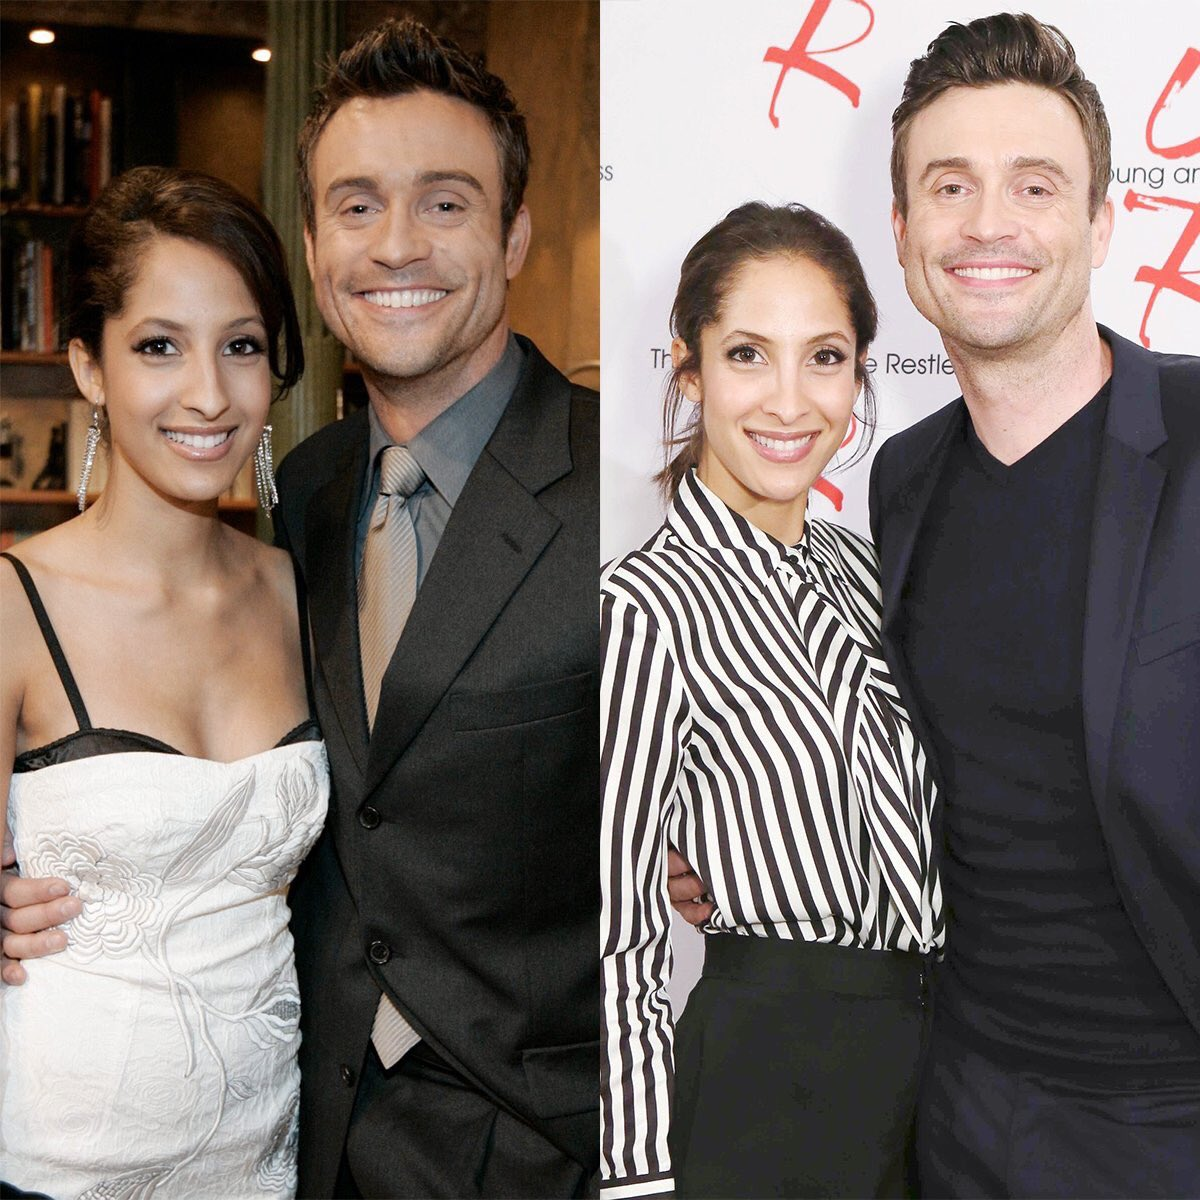 So... here's the #10yearchallenge ... #Lane style. ❤️#yr